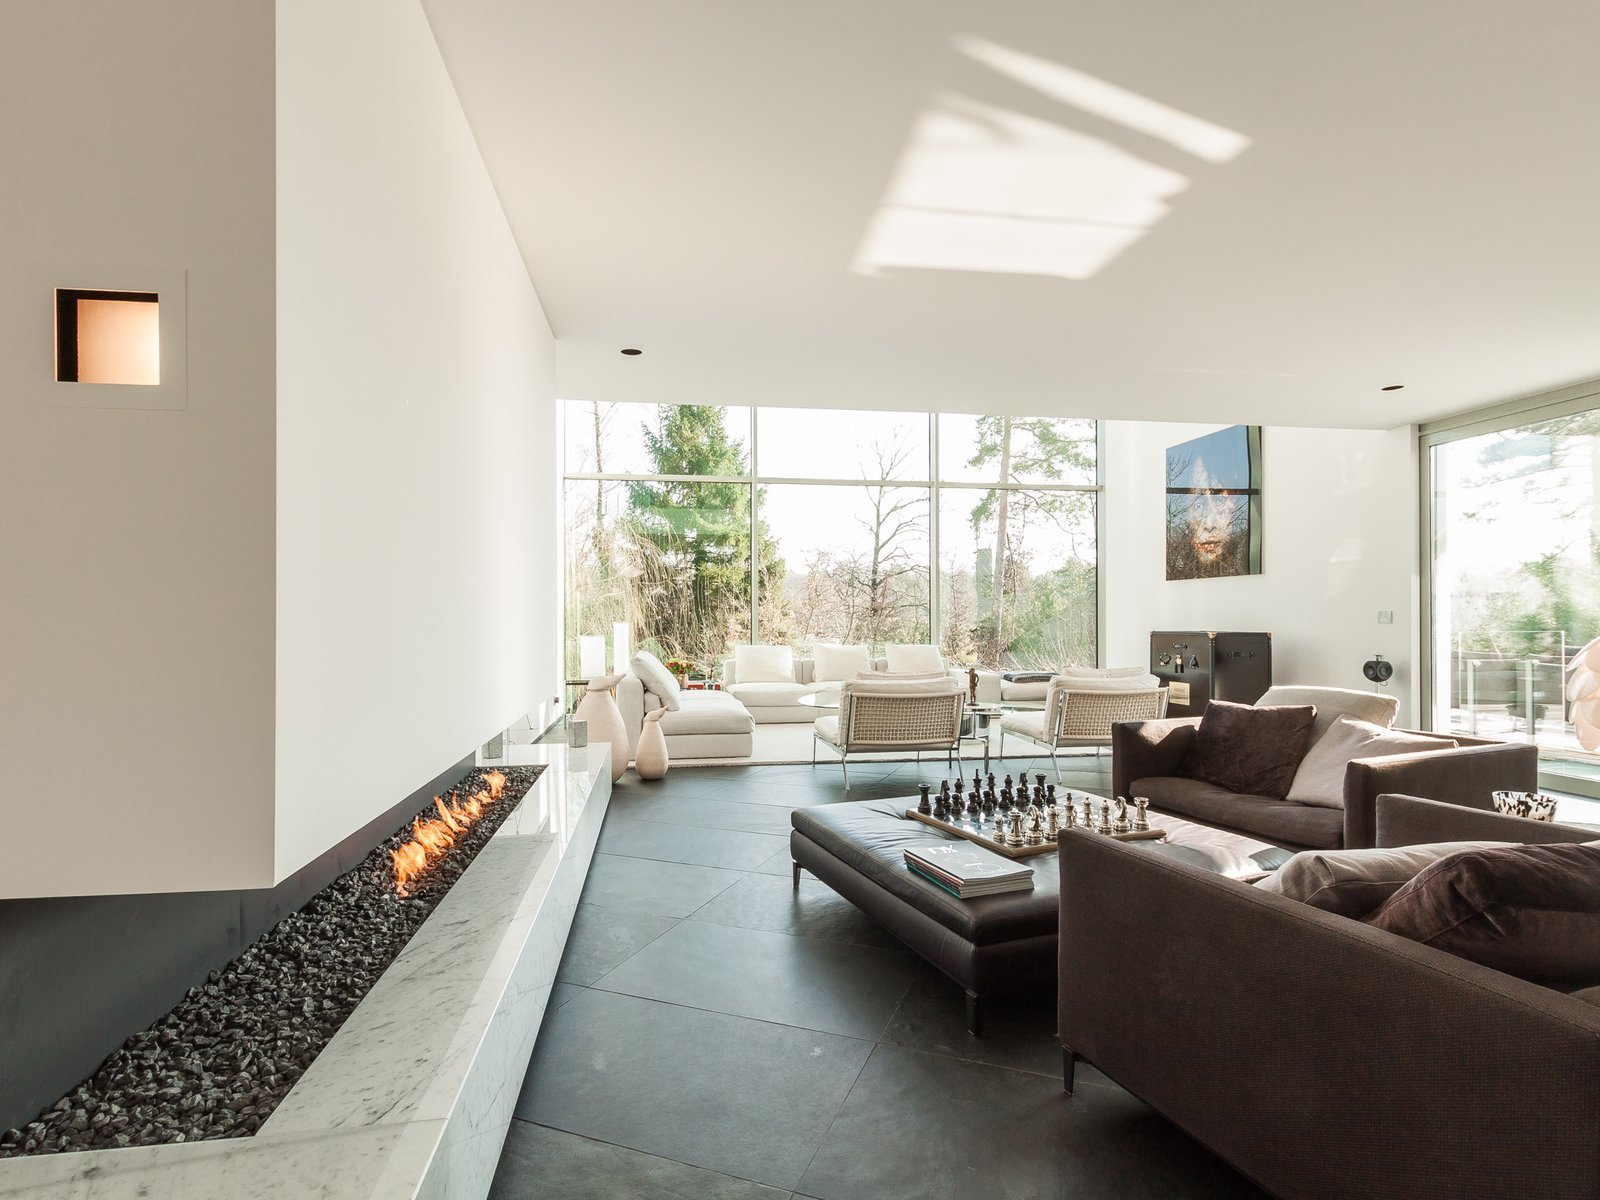 Living Room, Sofa, Recessed Lighting, Chair, Ribbon Fireplace, Slate Floor, and Ottomans This six-bedroom villa in Brussels ha a cut-in stone fireplace underneath a glass-enclosed walkway.  Photo 2 of 10 in 10 Modern Fireplaces That Make For Inviting Interiors